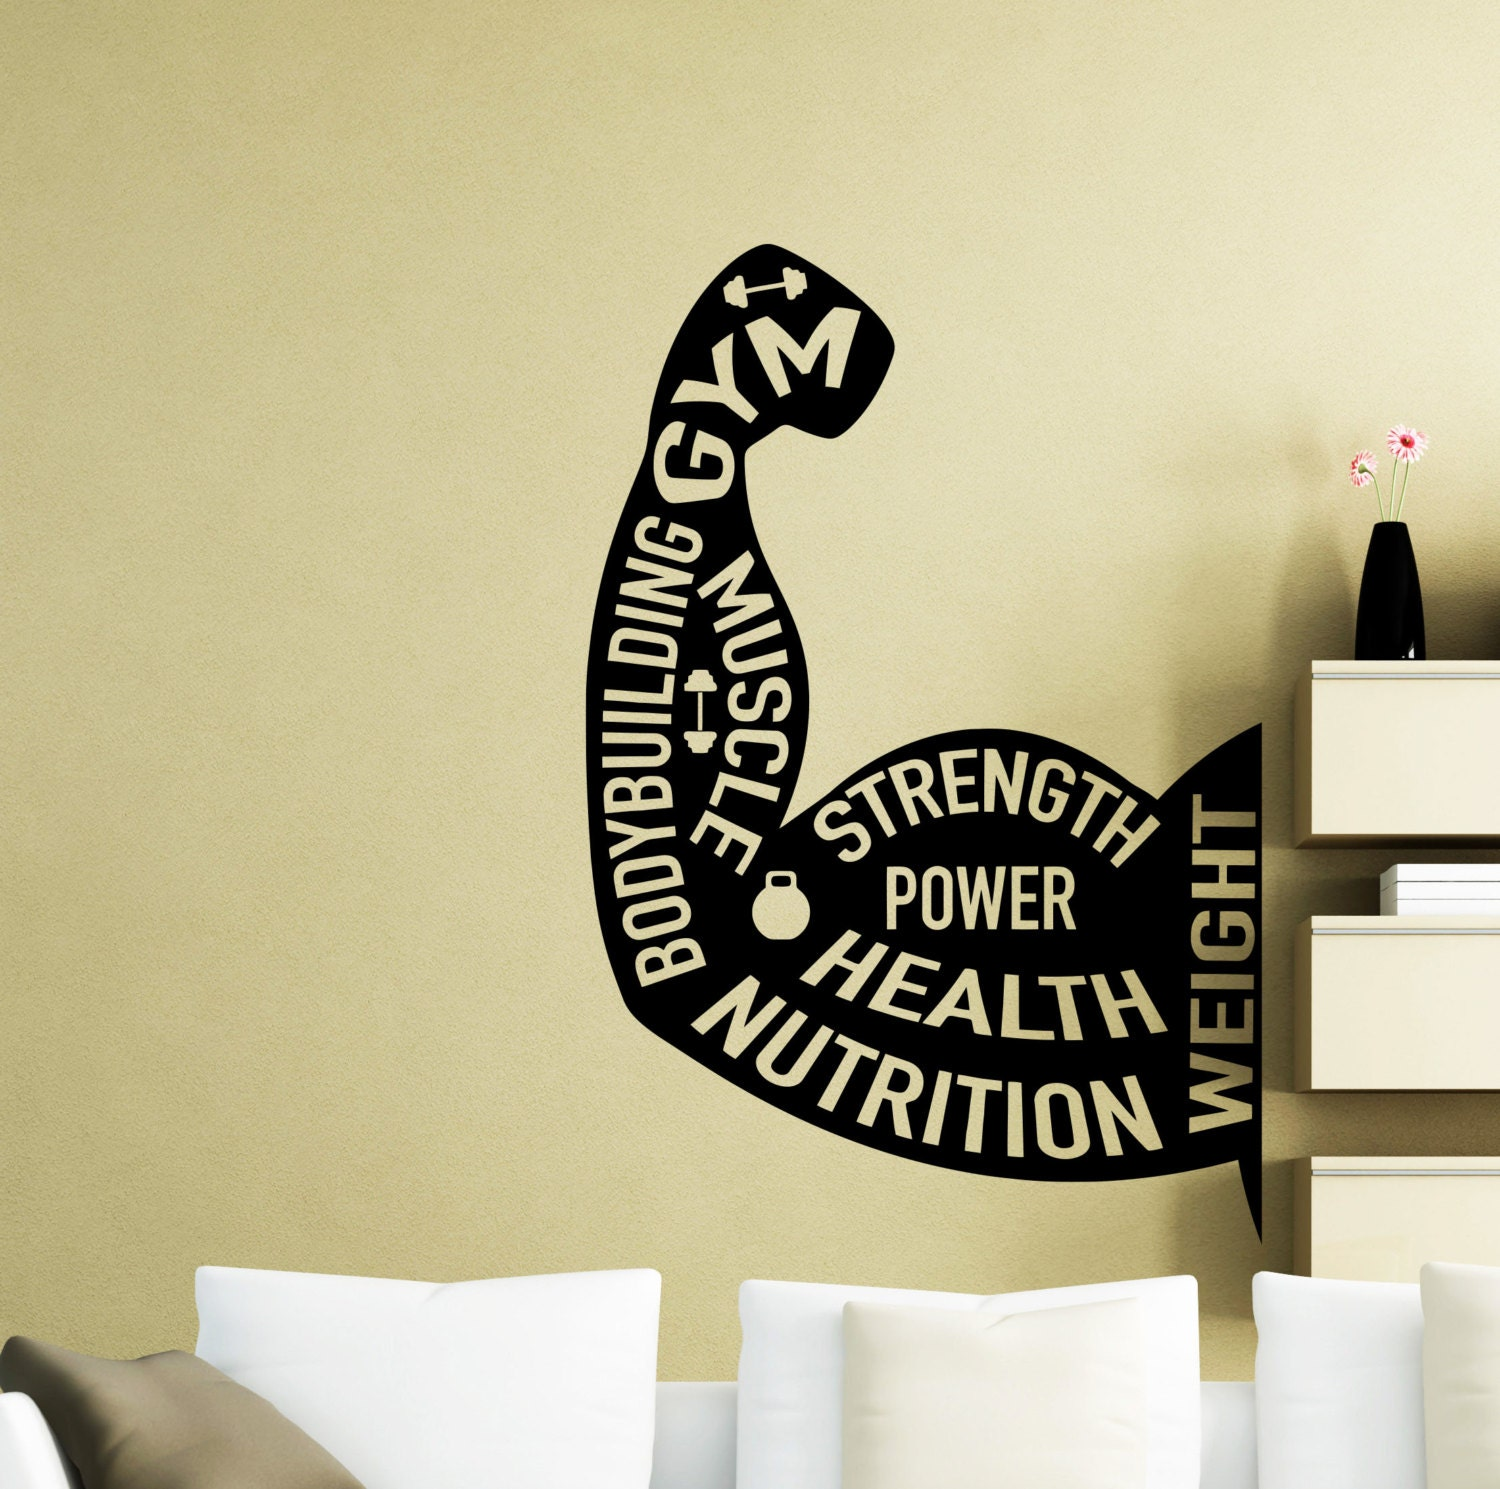 Gym Wall Decal Bodybuilding Arm Muscles Motivational Words Gym